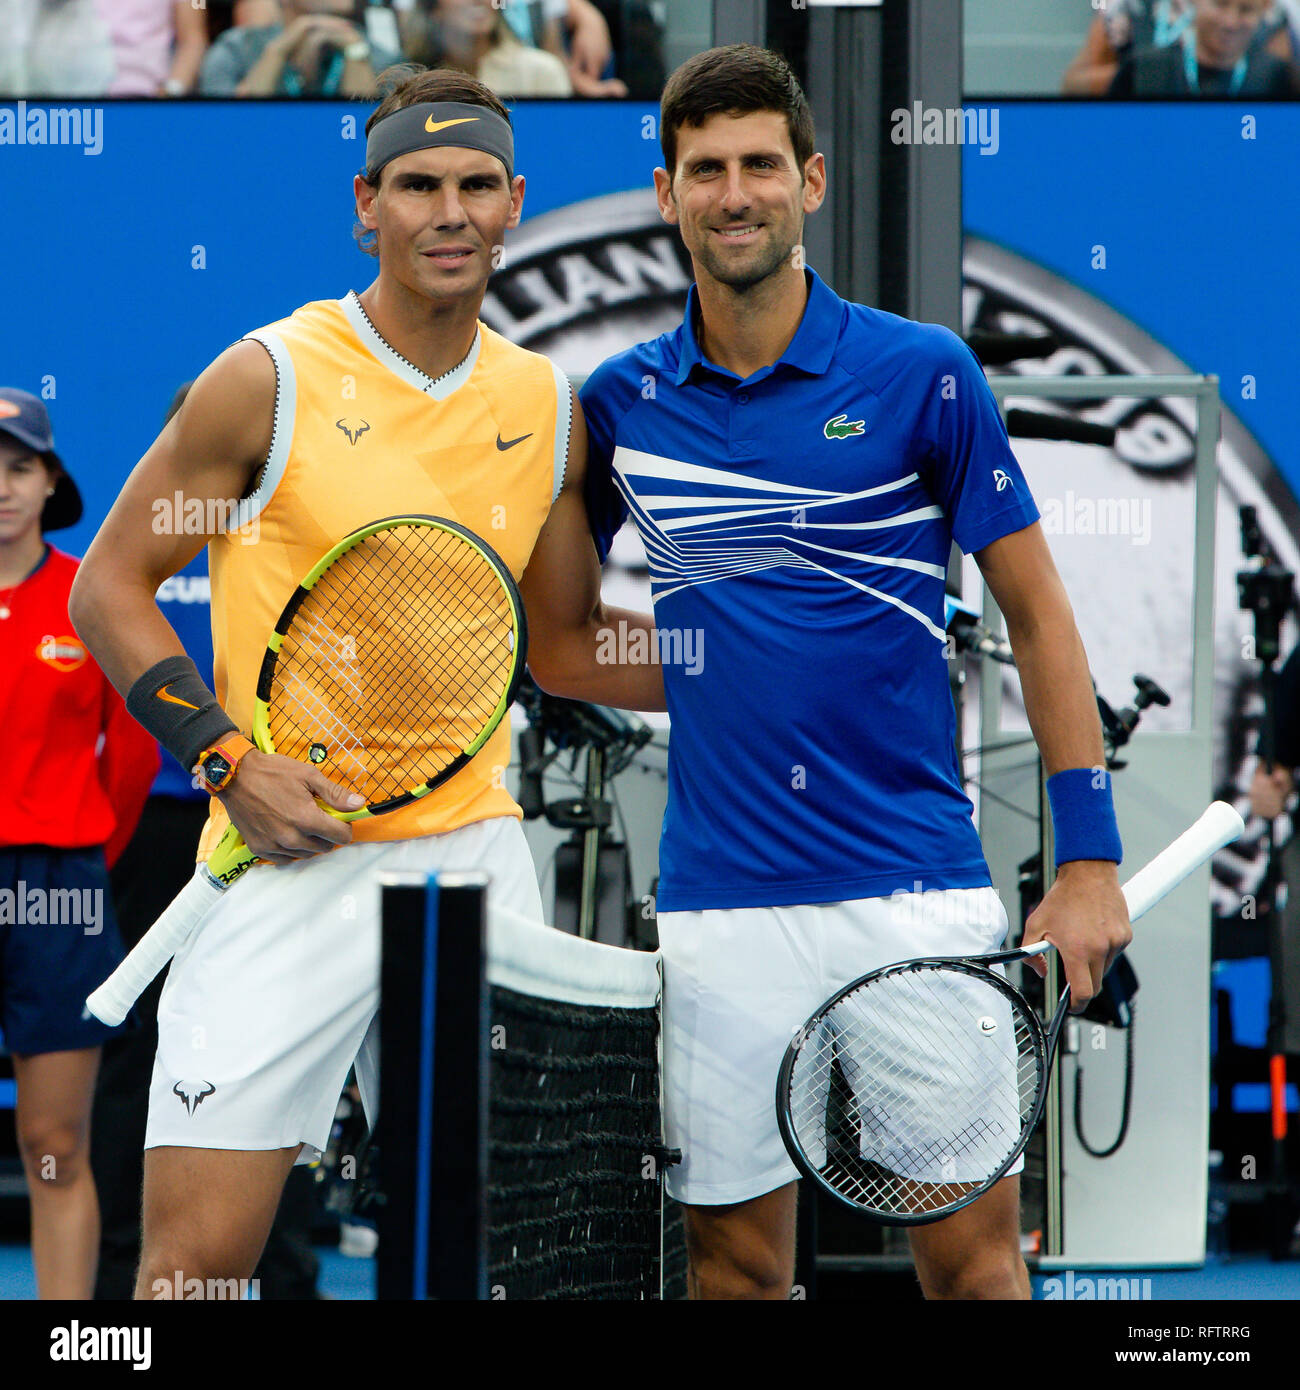 Melbourne, Australia. 27th Jan, 2019. Rafael Nadal (l) from Spain and Novak Djokovic from Serbia stand together before the men's final nat the 2019 Australian Open Grand Slam tennis tournament in Melbourne, Australia. Frank Molter/Alamy Live news - Stock Image